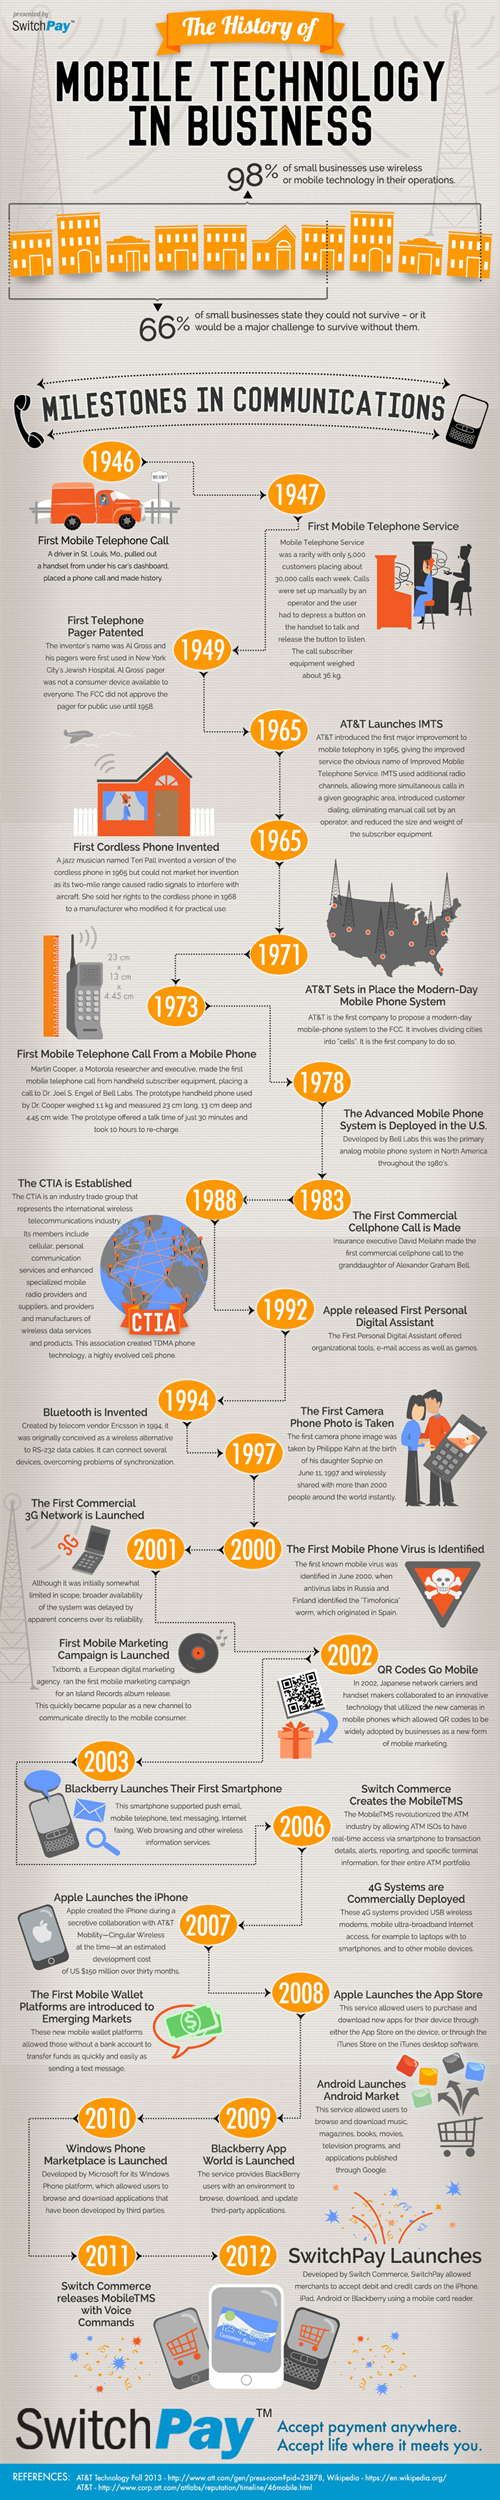 History of Mobile Technology 2 The History of Mobile Technology in Business